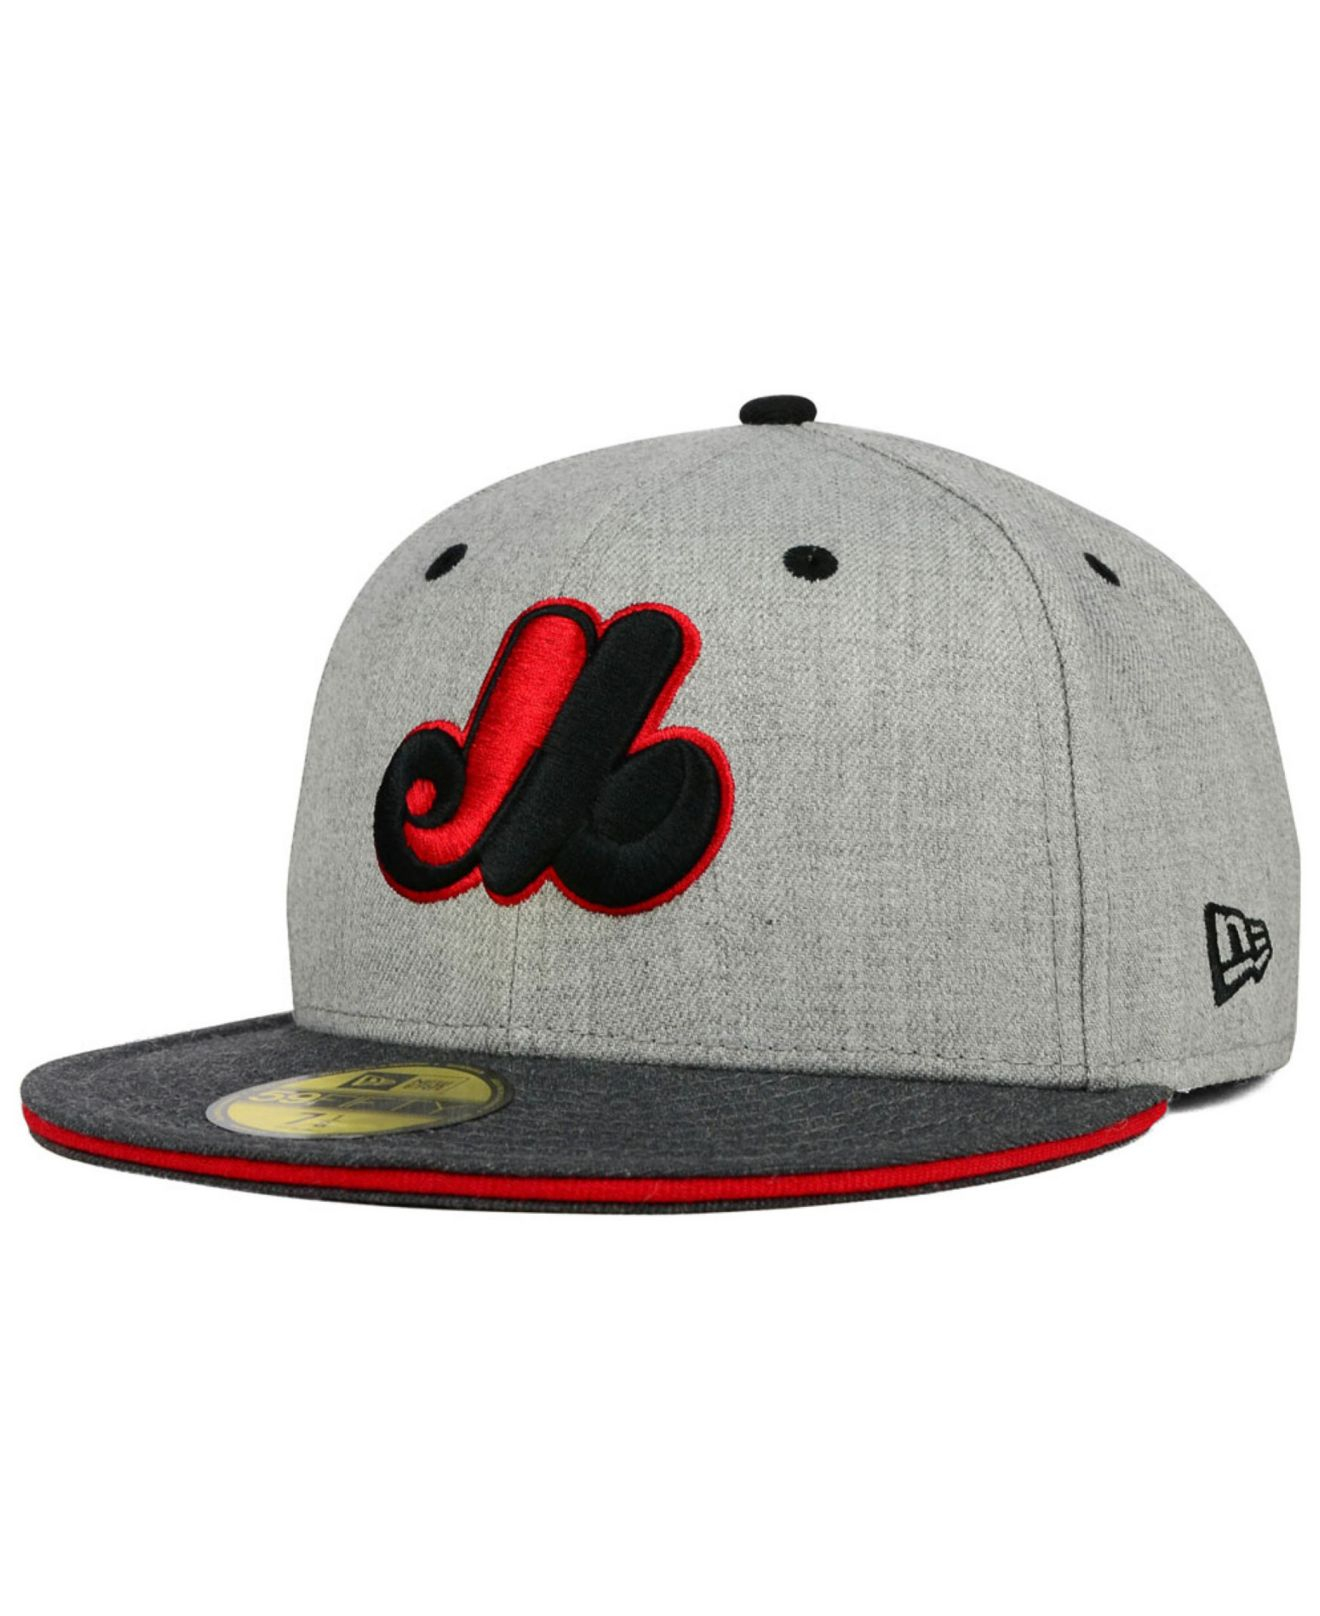 078261cb2 ... official store lyst ktz montreal expos heather shadow 59fifty cap in  gray for men 06a41 63885